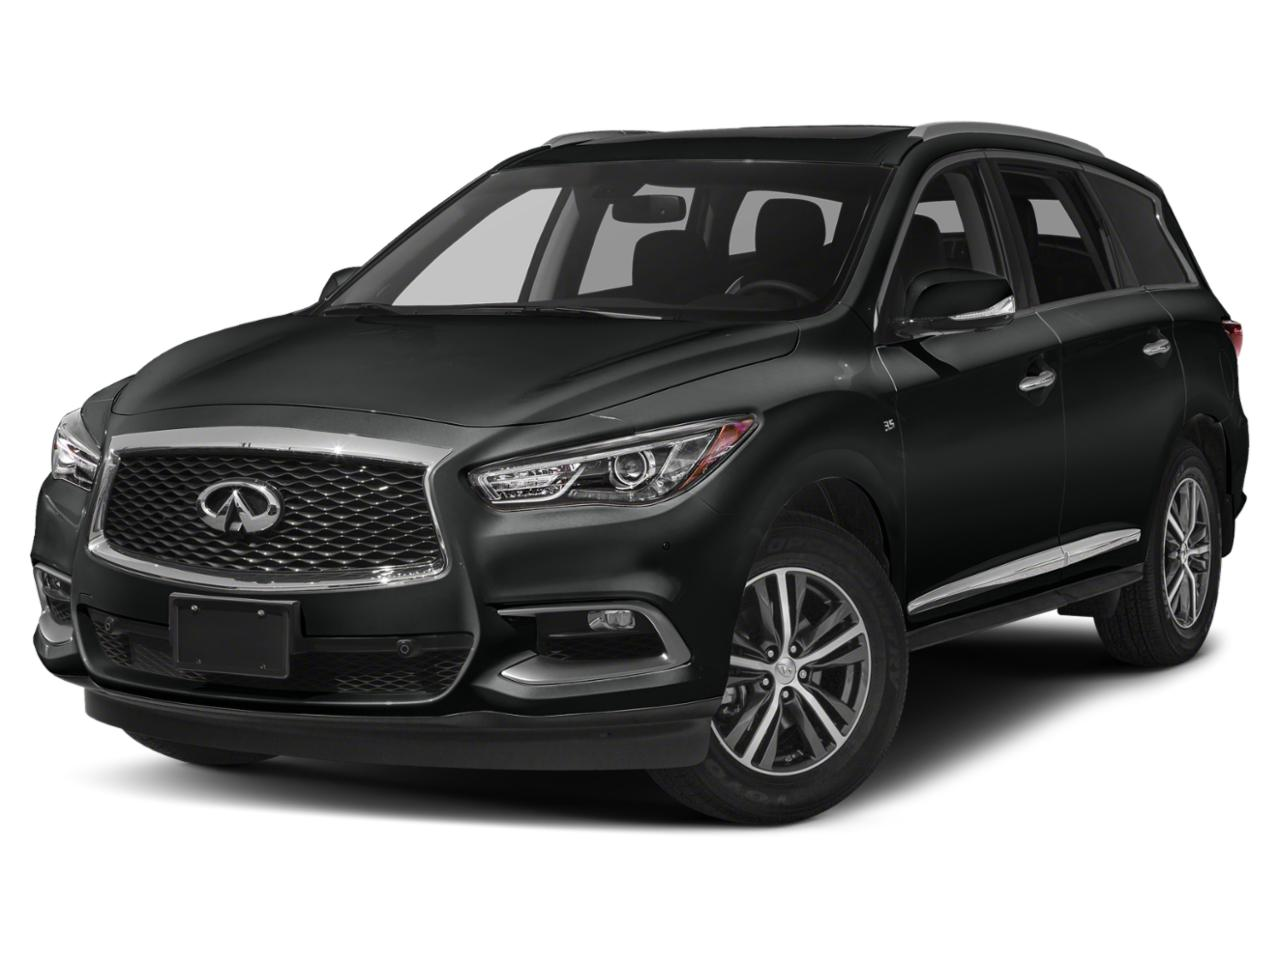 2019 INFINITI QX60 Vehicle Photo in Mission, TX 78572